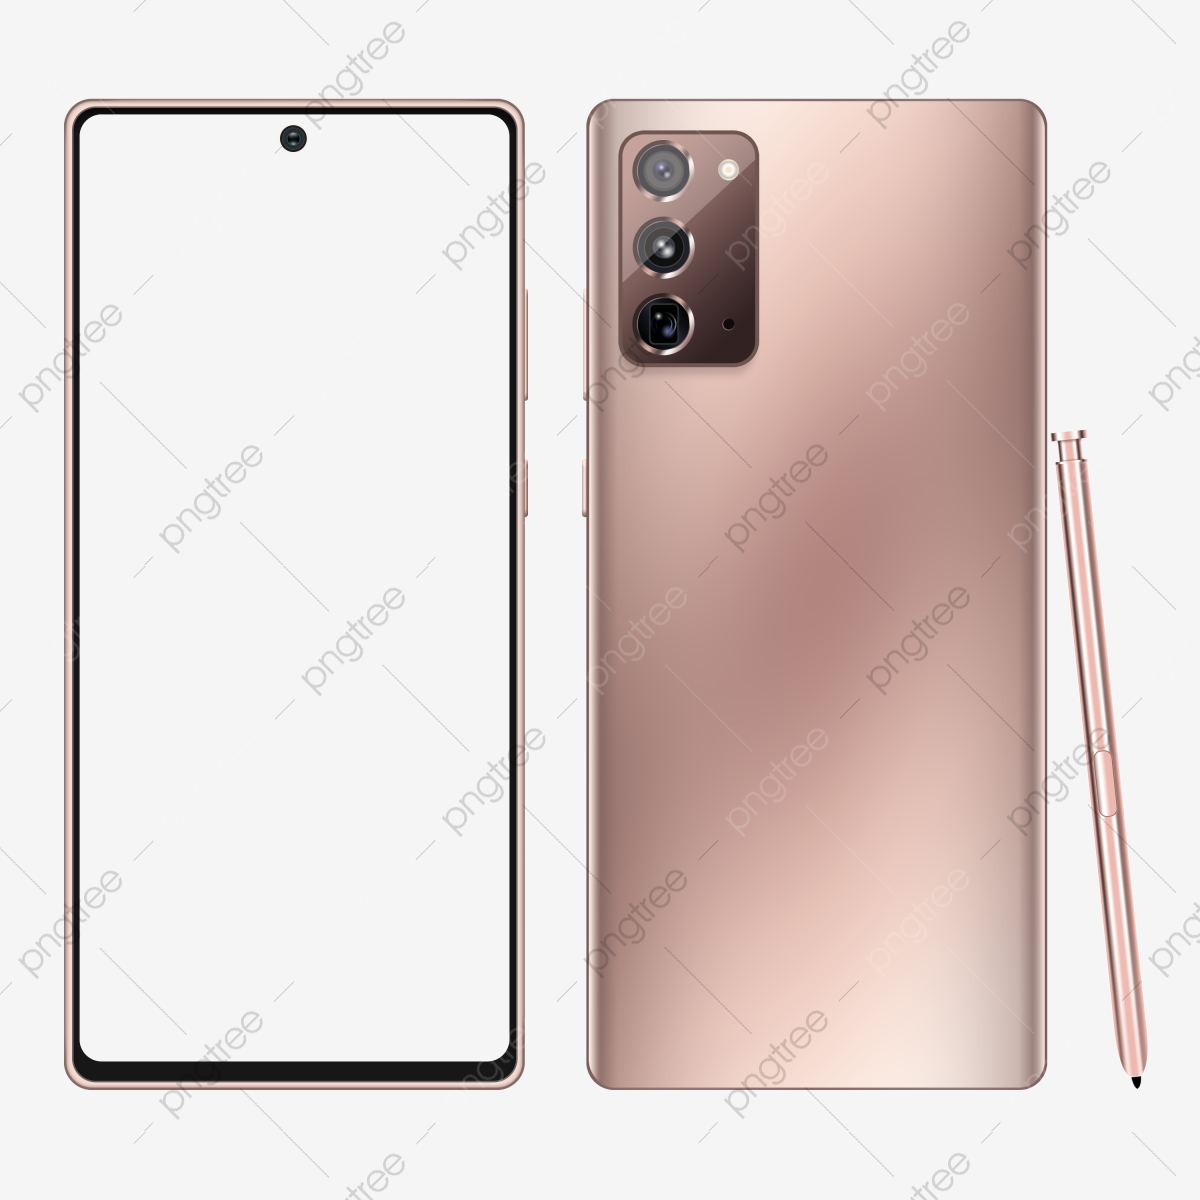 Samsung Galaxy Note 20 Mockup Mystic Bronze Color Editable Psd Front And Back View With Pen Editable Psd Mockups Png Transparent Clipart Image And Psd File For Free Download